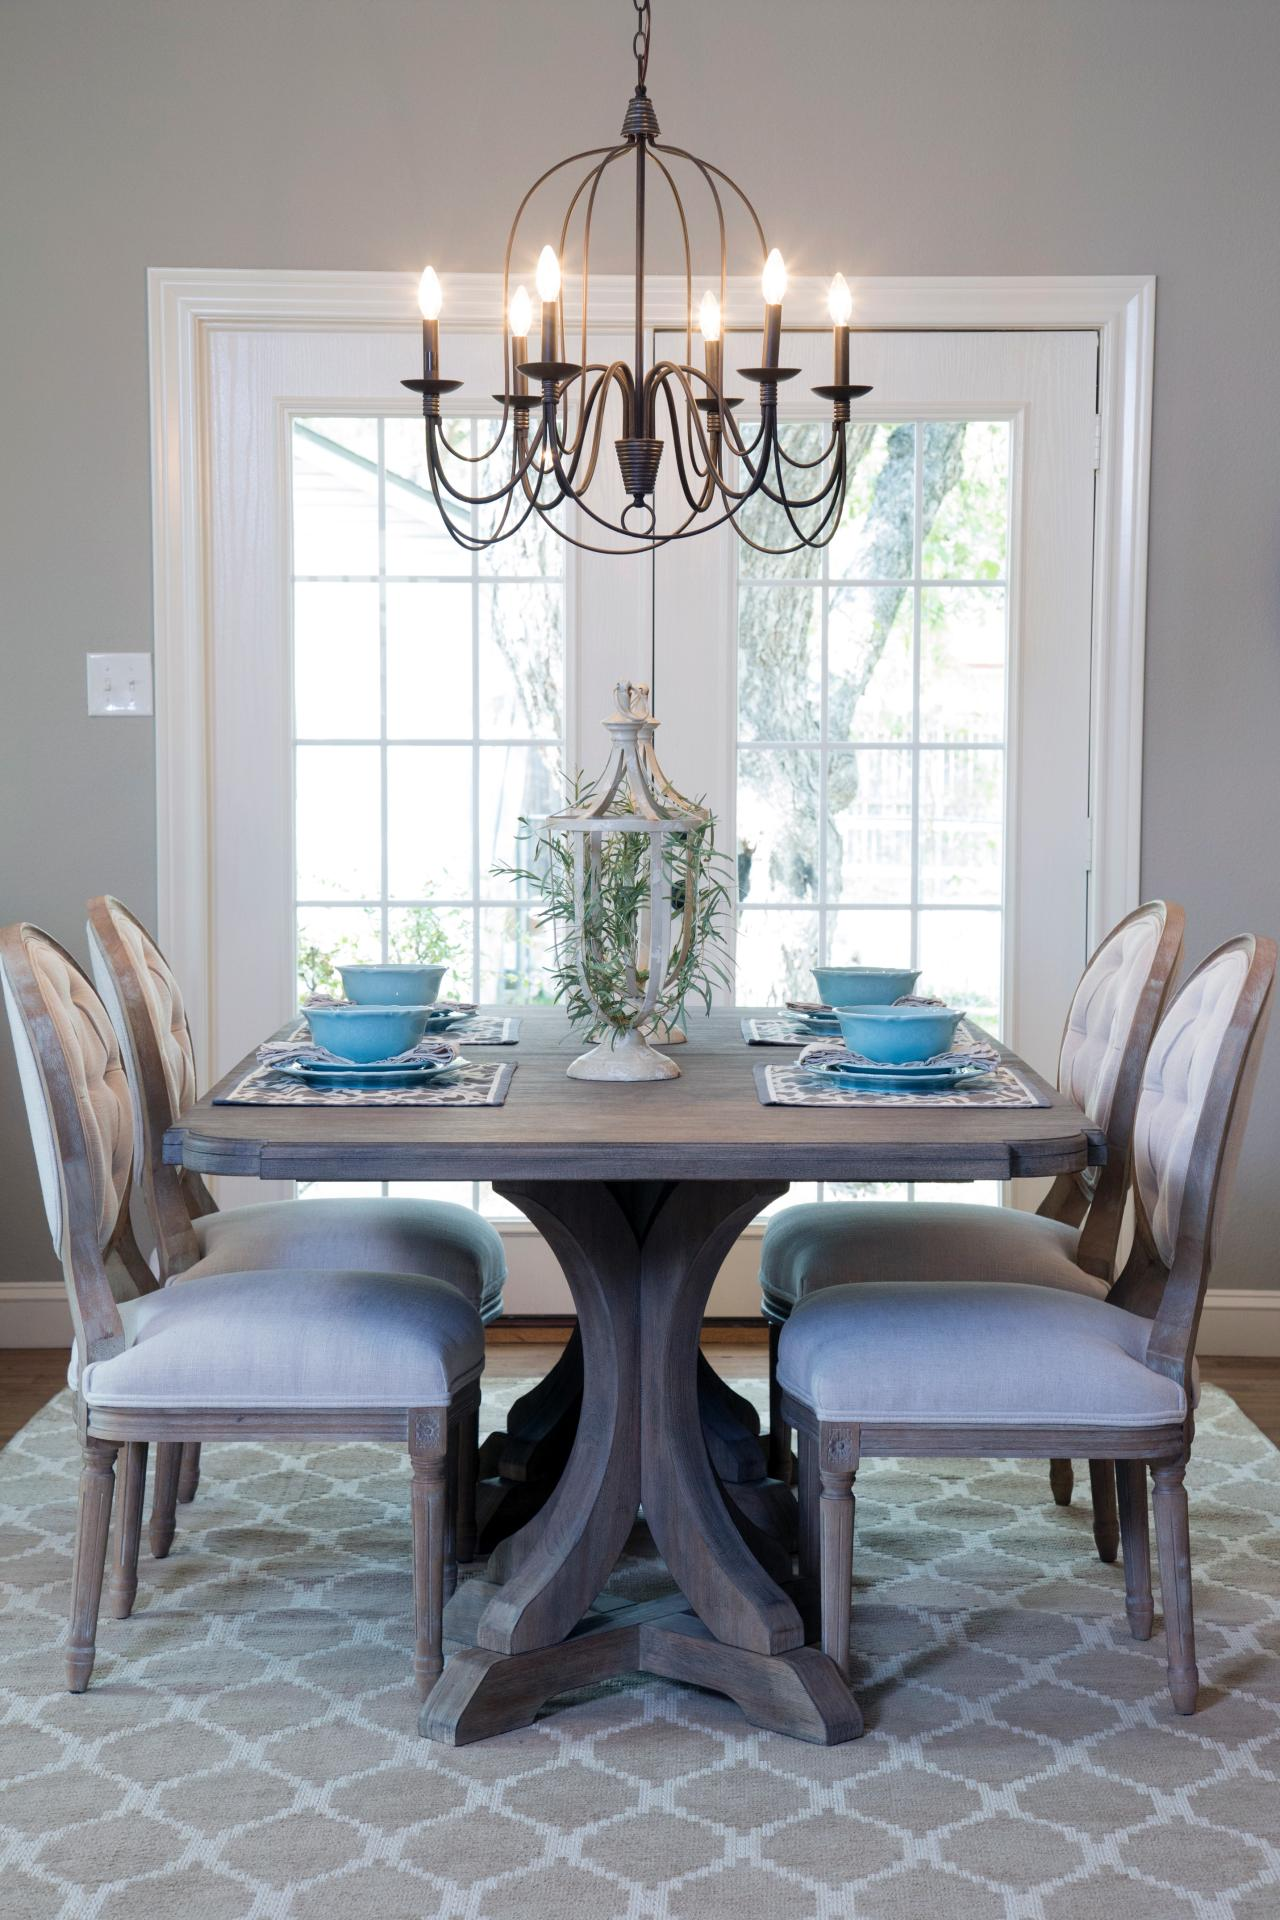 A 1940s vintage fixer upper for first time homebuyers for Dining room light ideas